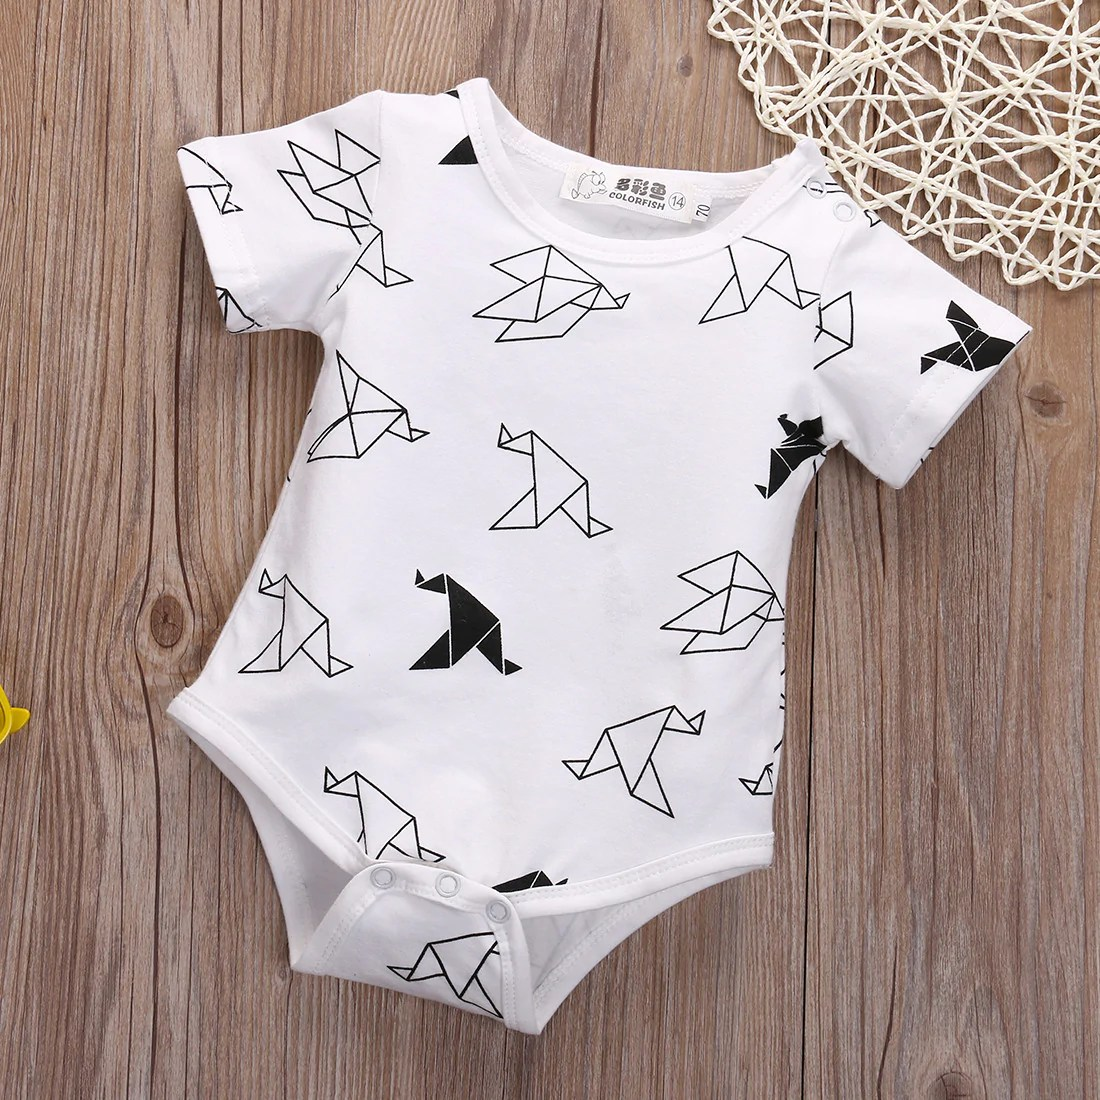 Newborn Infant Outfits Newborn Babies Clothes